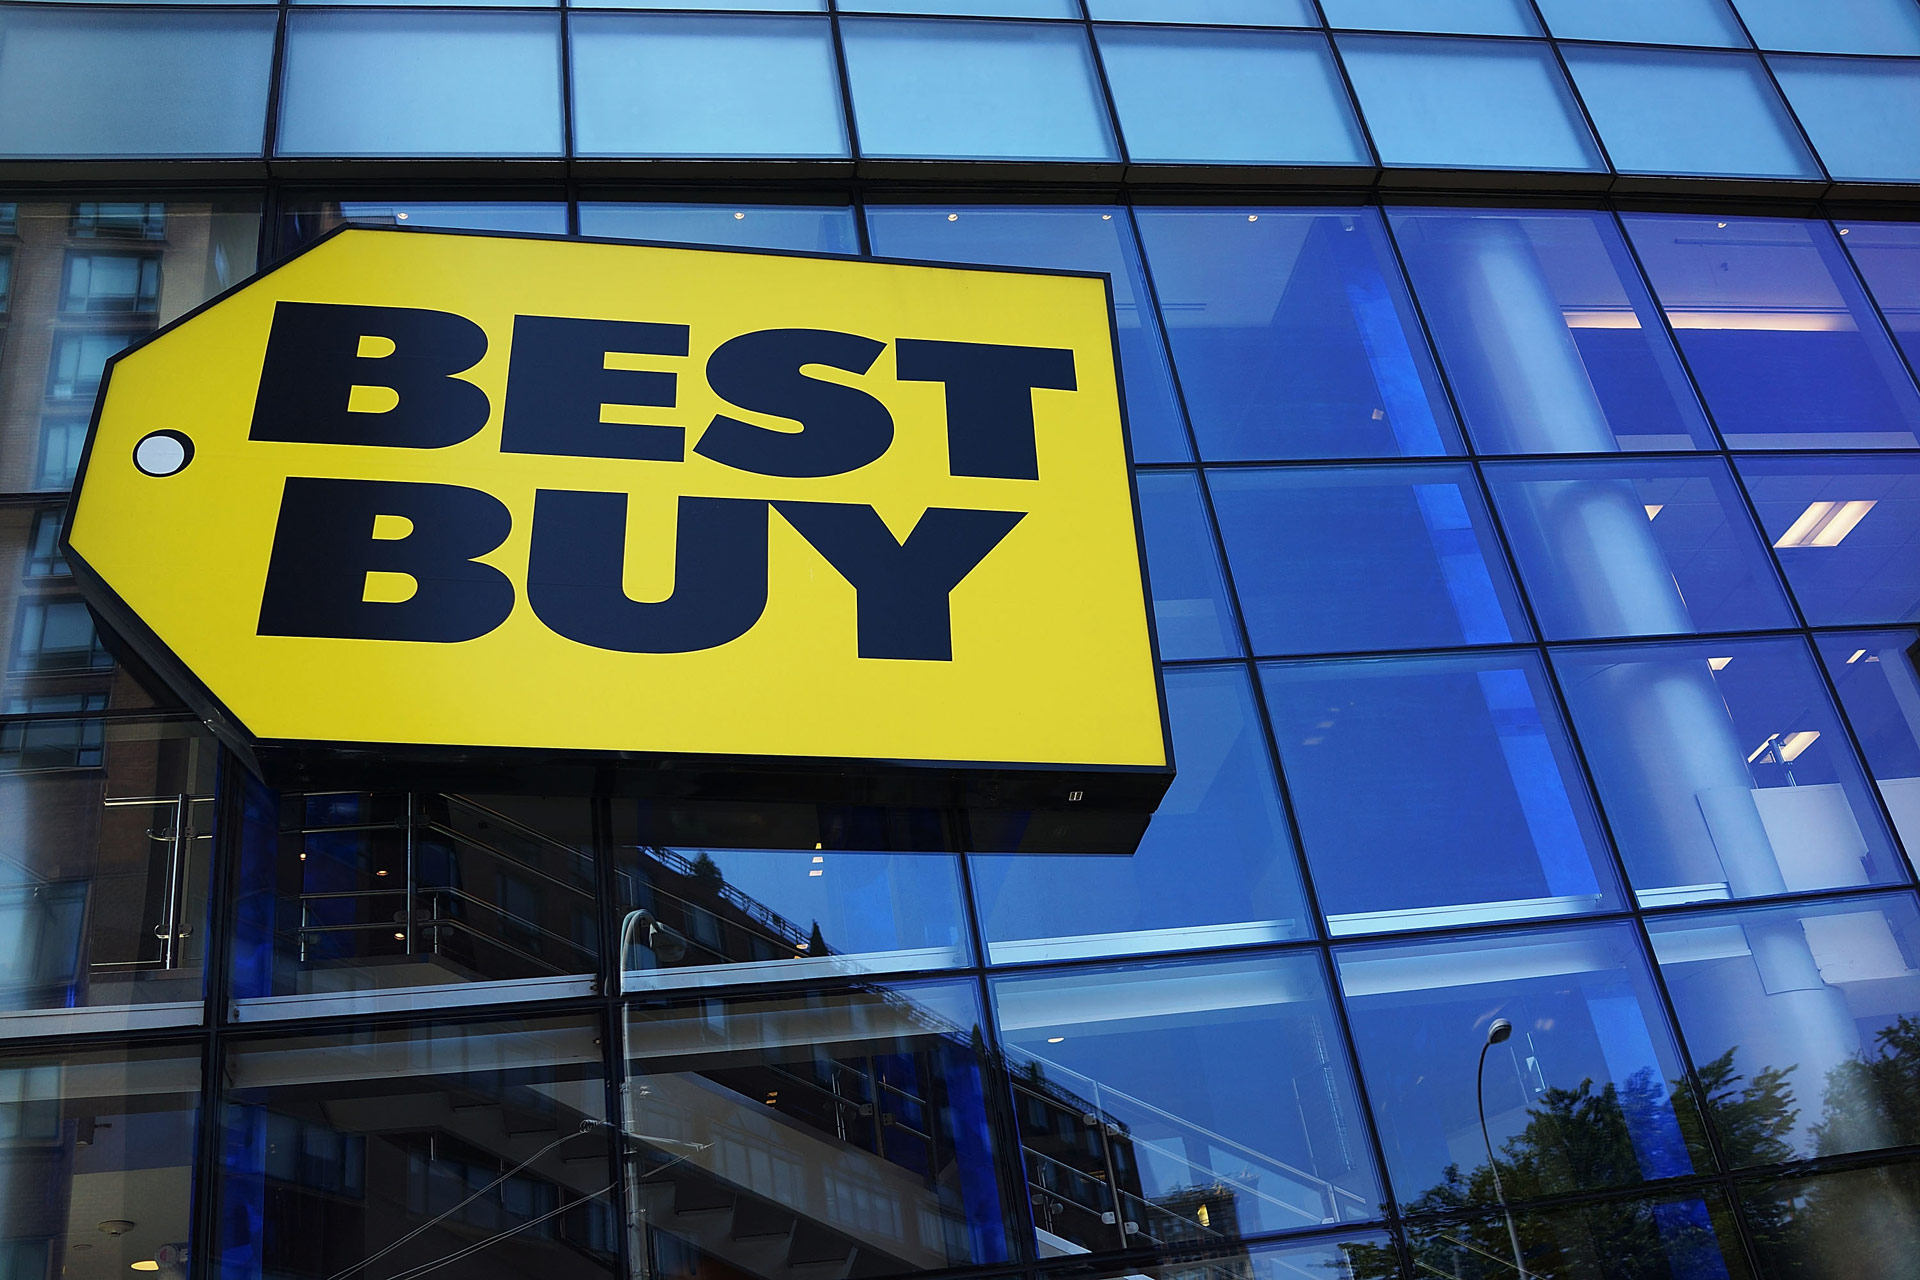 A photo of the Best Buy logo on a store